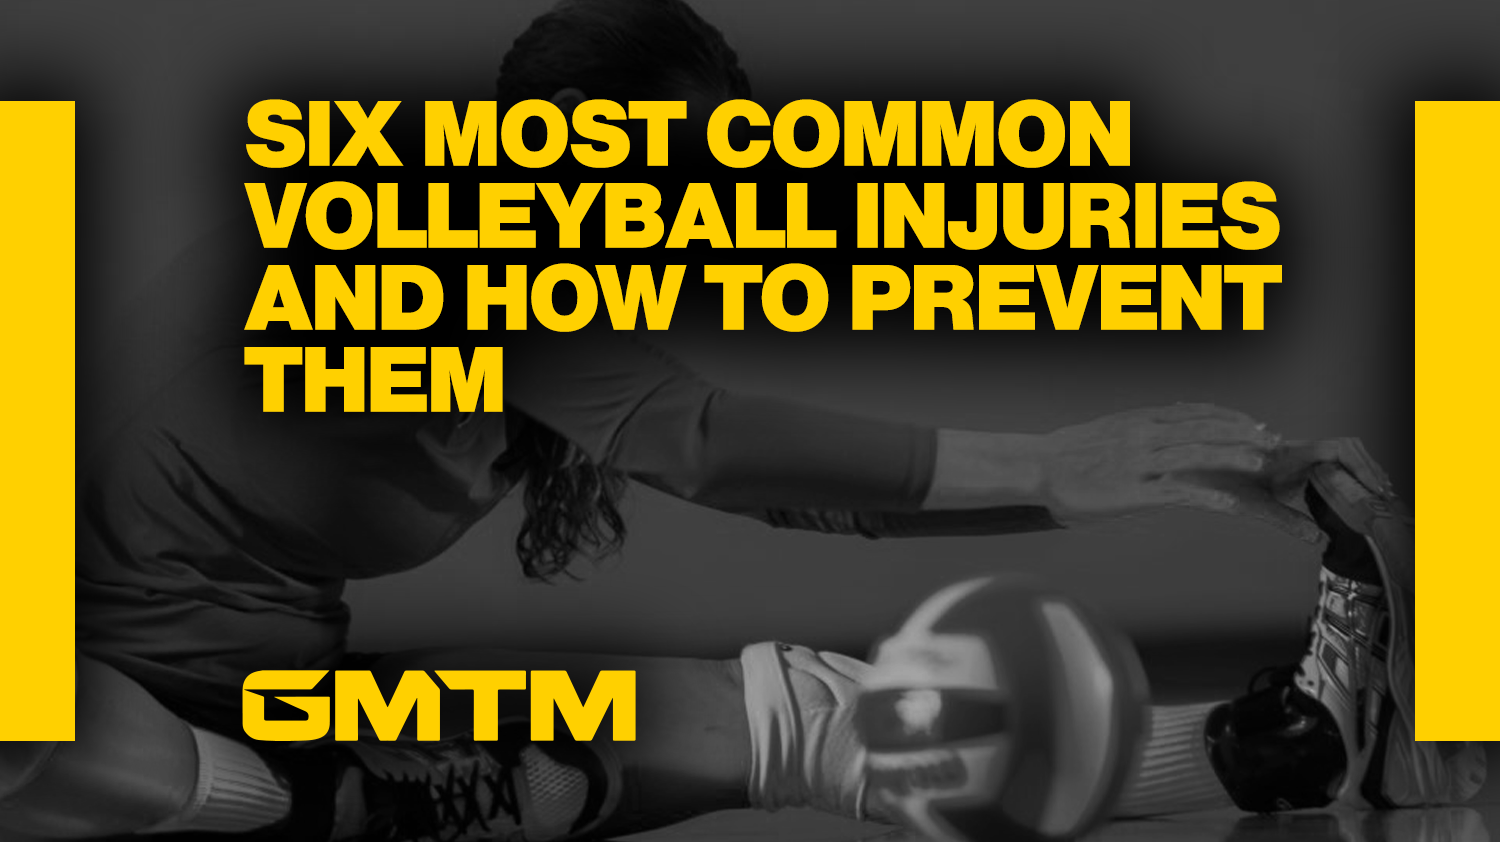 Six Most Common Volleyball Injuries & How To Prevent Them